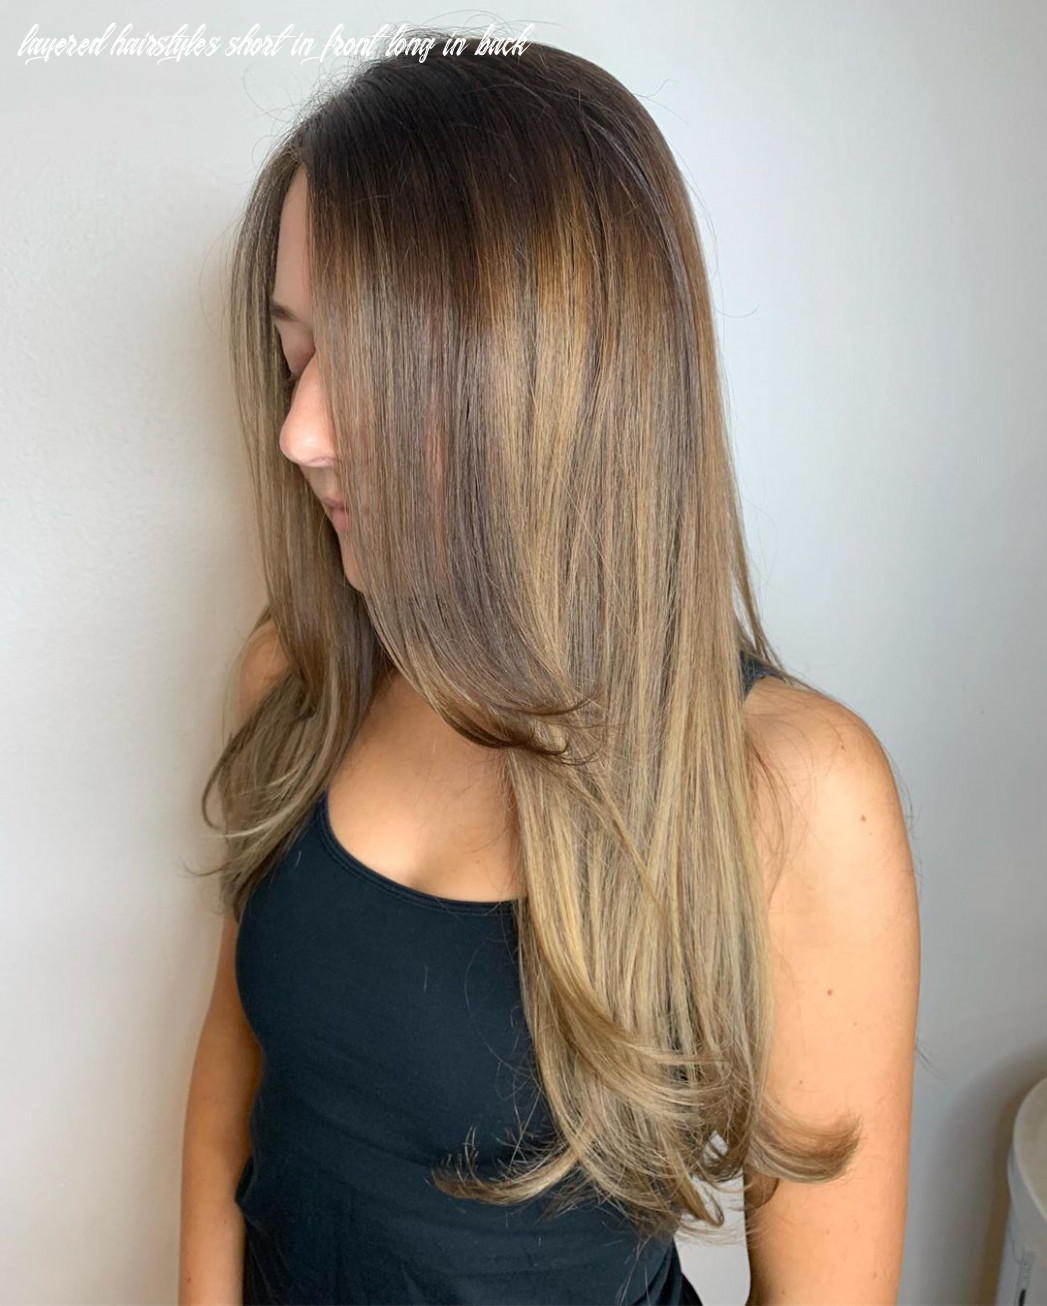 9 best layered haircuts and hairstyles for 9 hair adviser layered hairstyles short in front long in back